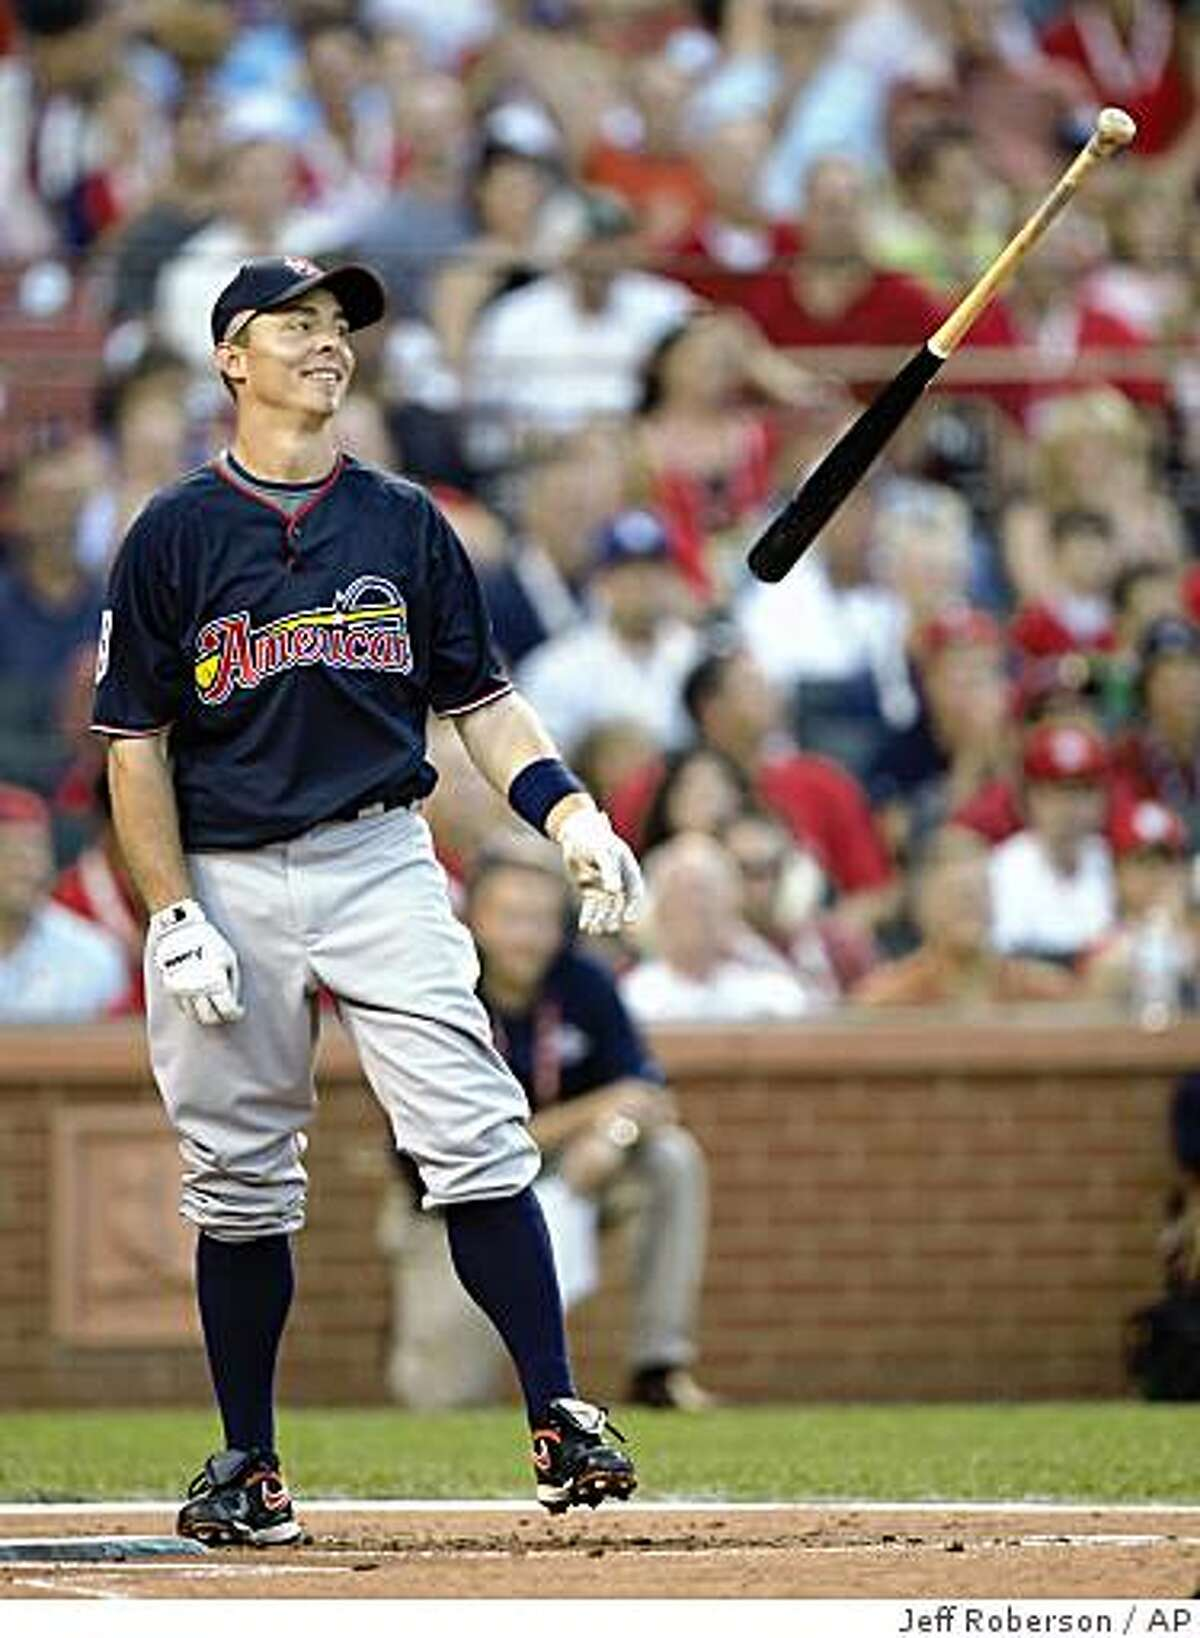 American League's Brandon Inge of the Detroit Tigers flips his bat after getting no home runs in the first round of the MLB baseball Home Run Derby in St. Louis, Monday, July 13, 2009. (AP Photo/Jeff Roberson)